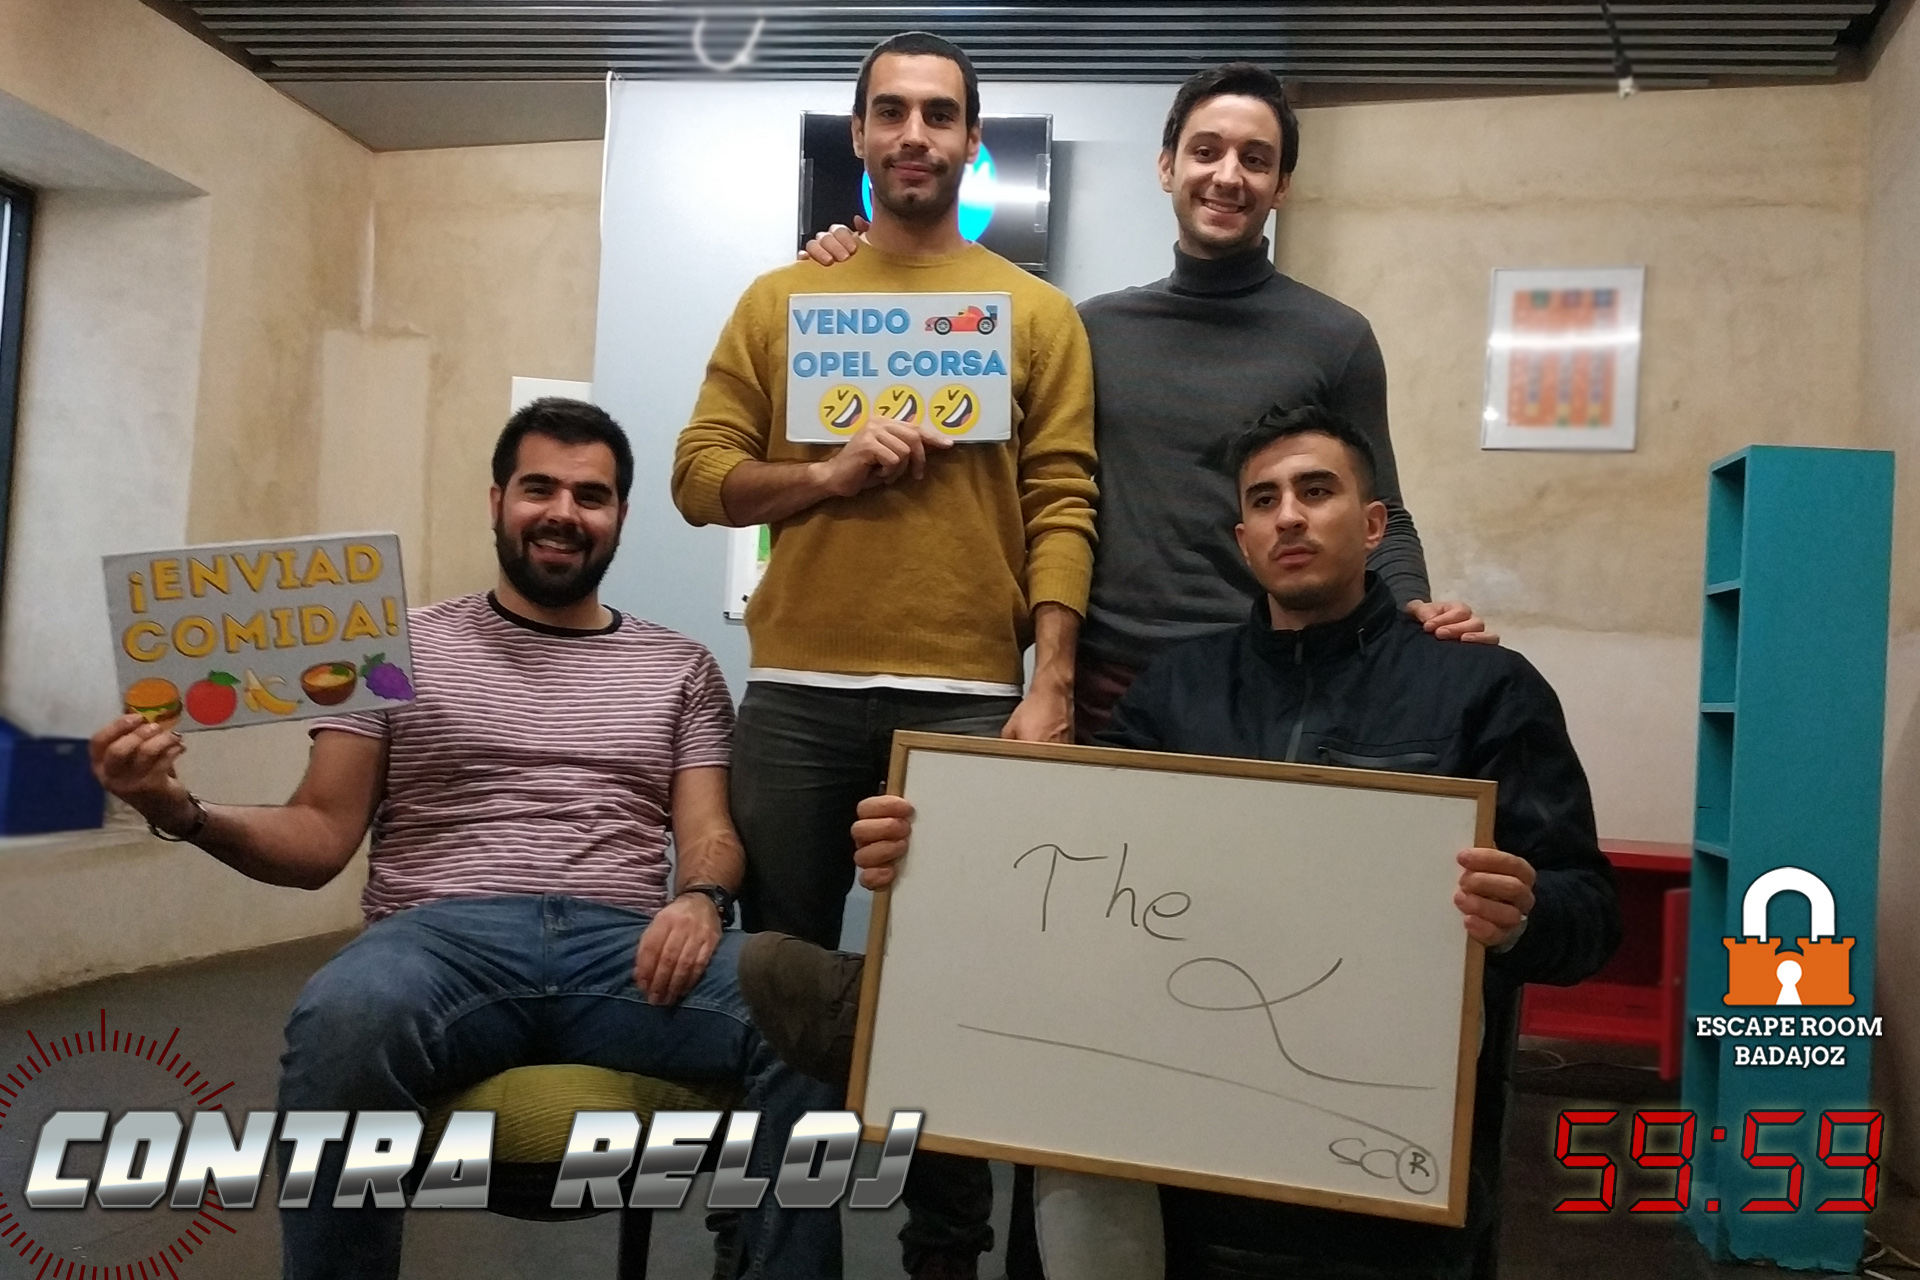 equipo-thealpha-escape-room-contrareloj